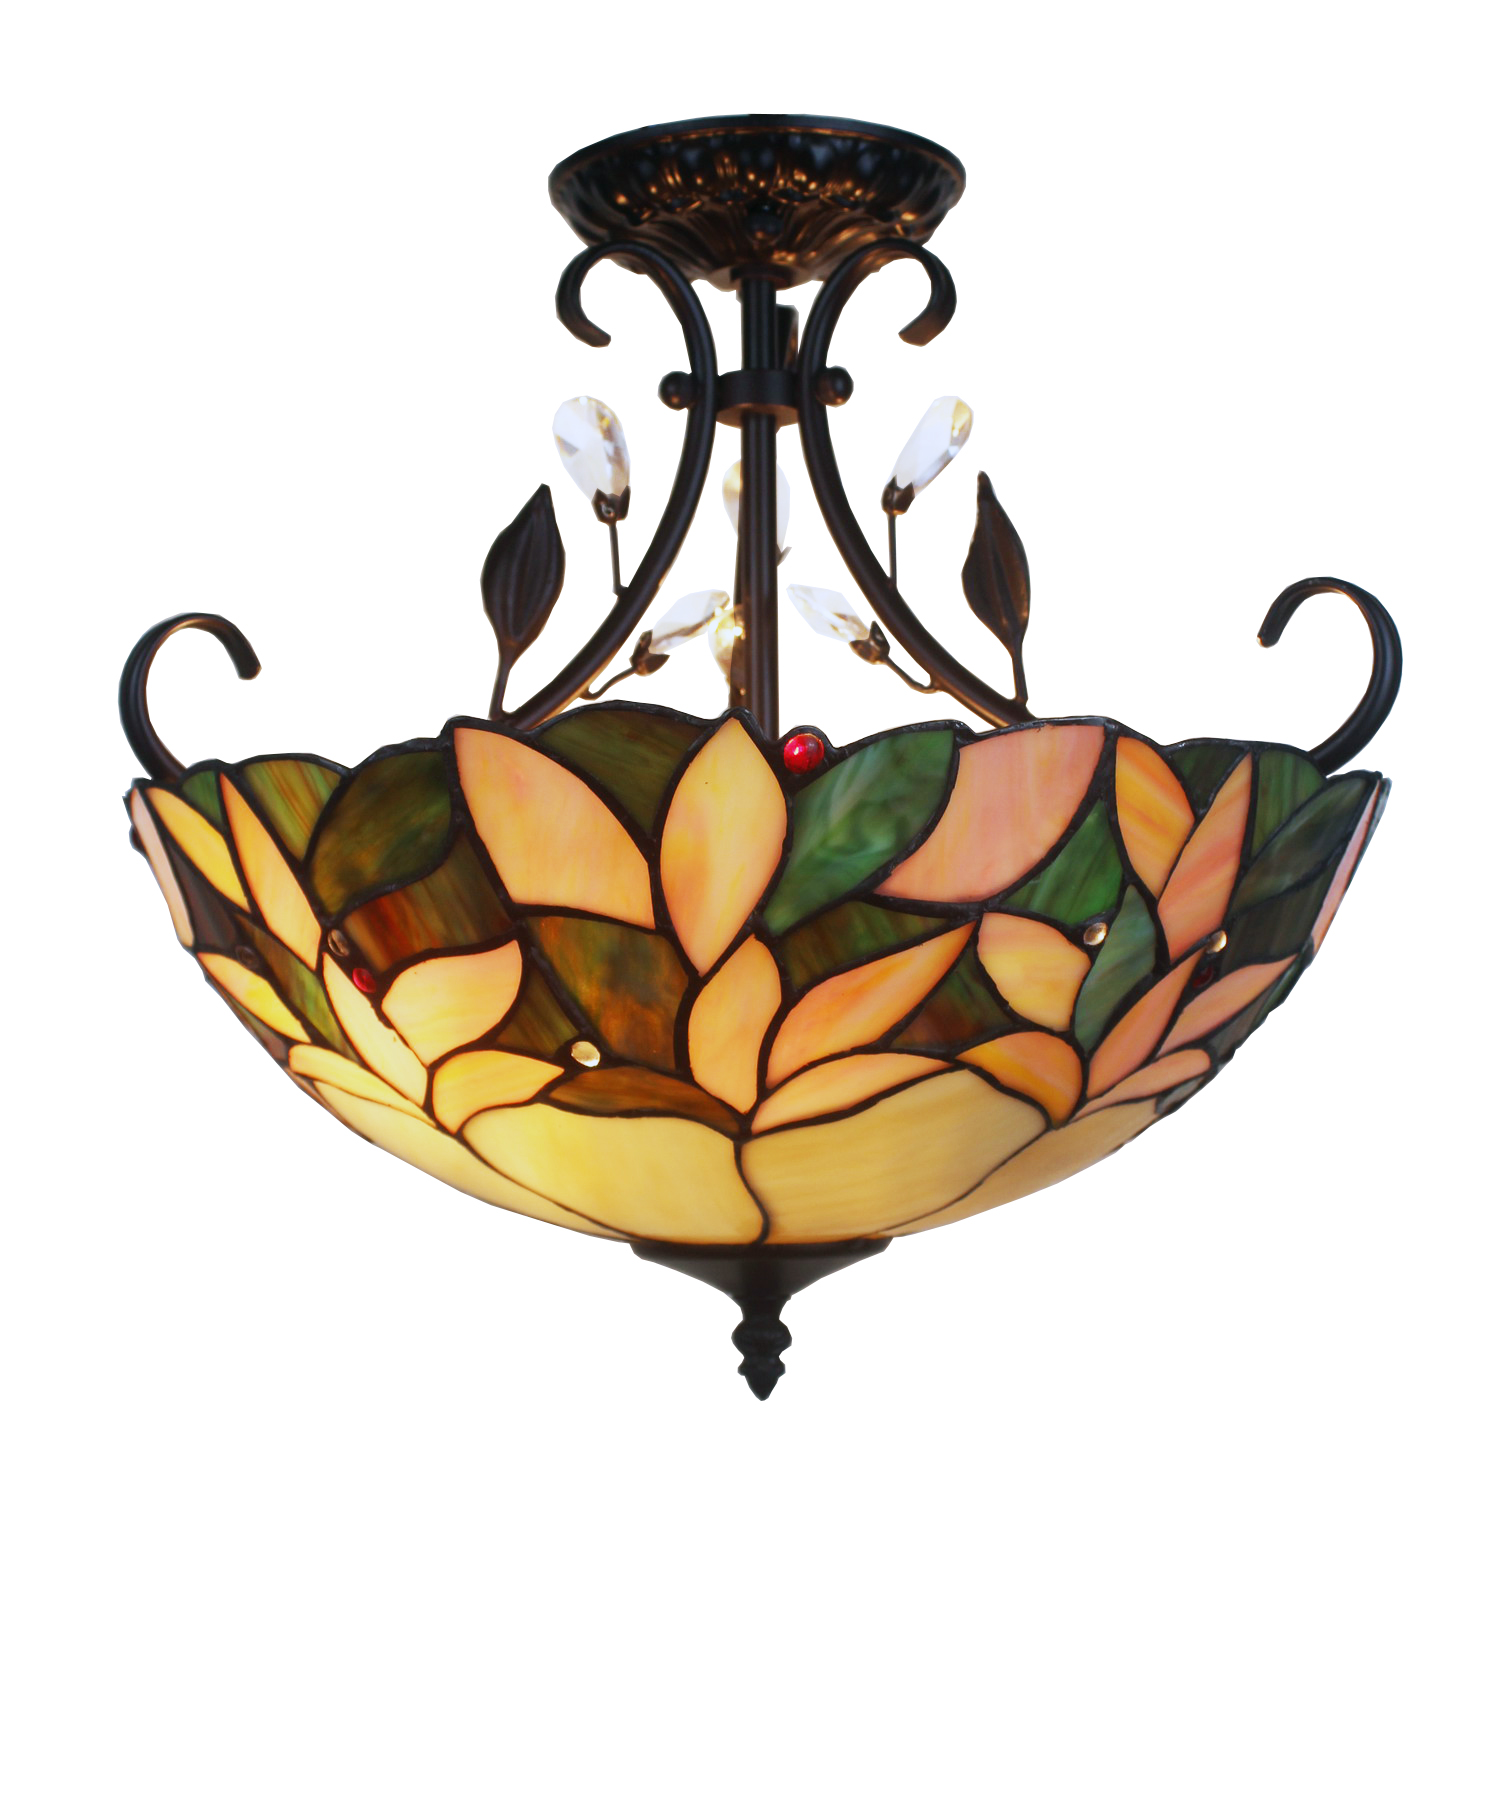 """Aika 2-Light Leafy 16"""" Tiffany Style with Crystals Ceiling Lamp by Supplier Generic"""